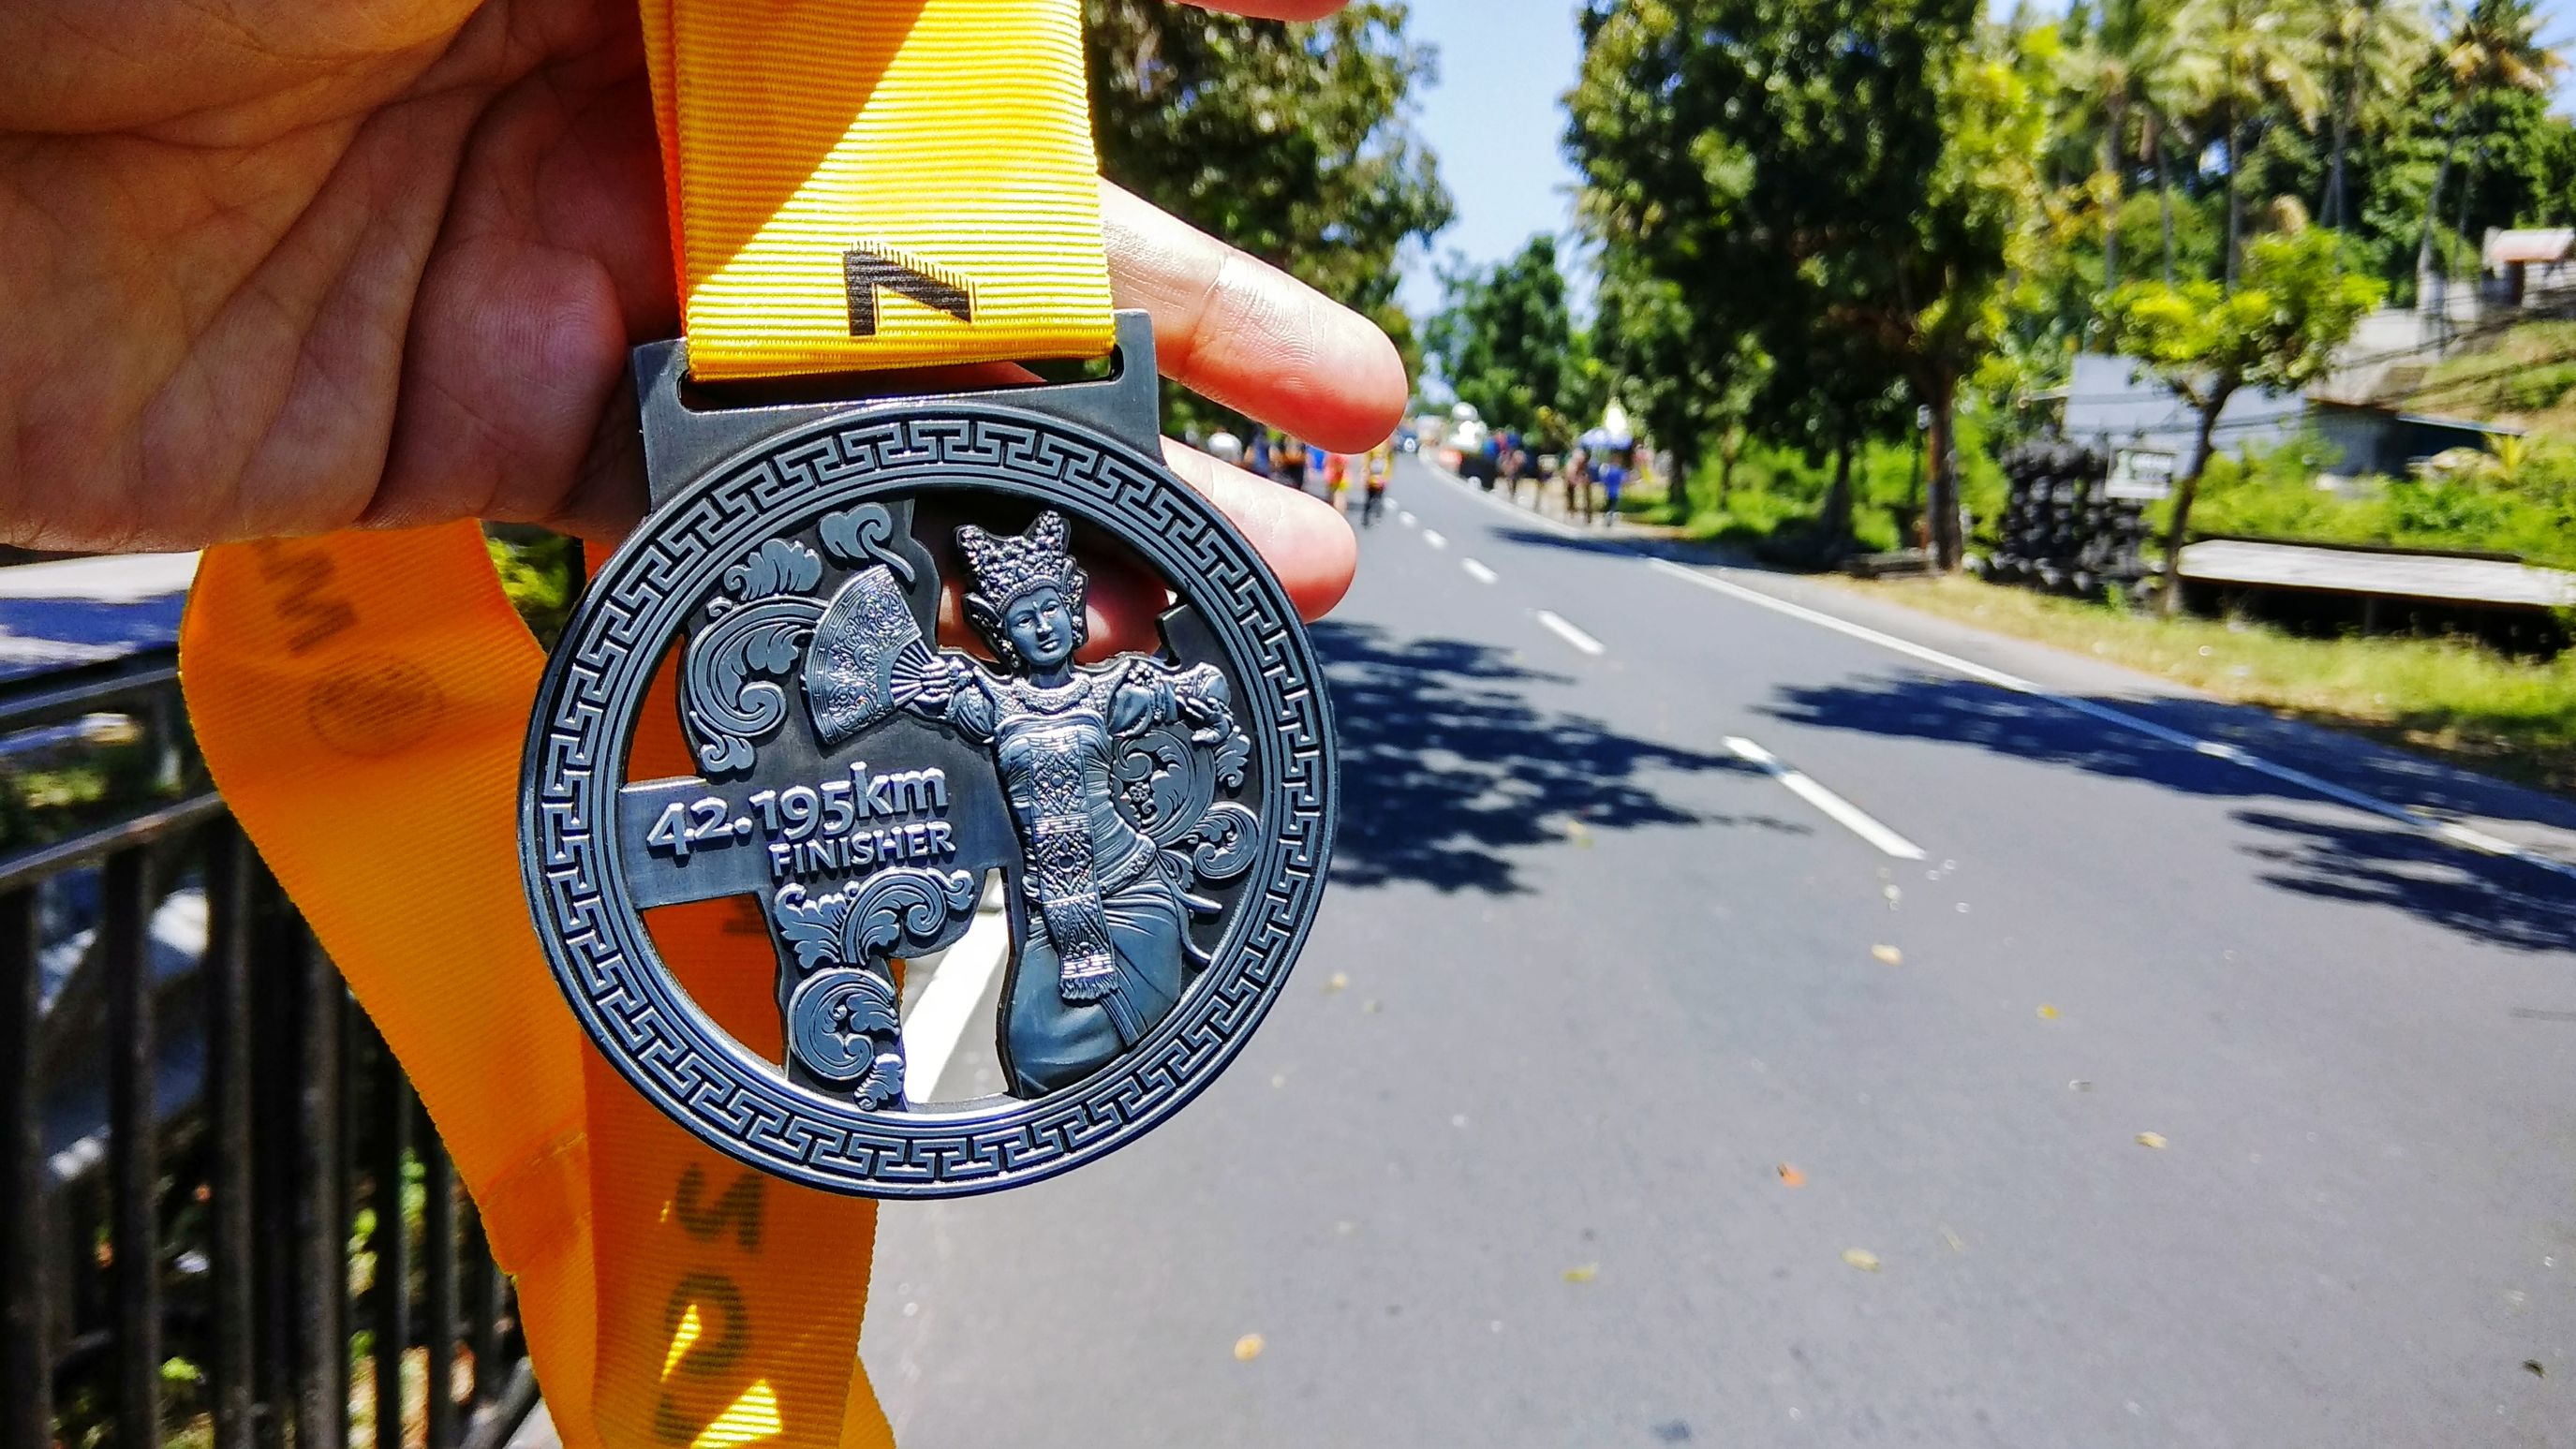 """ 42K :) _ Bali Marathon 2017 Medallion Summer Run Run Run Medal Runners View Bali Marathon Finisher Medal Marathoner Human Hand Close-up Maybank Bali Marathon Marathon Runner Running Race Road Runners Lomba Lari Finishers No People 42k Full Marathon Leisure Activity Bali Dancer"